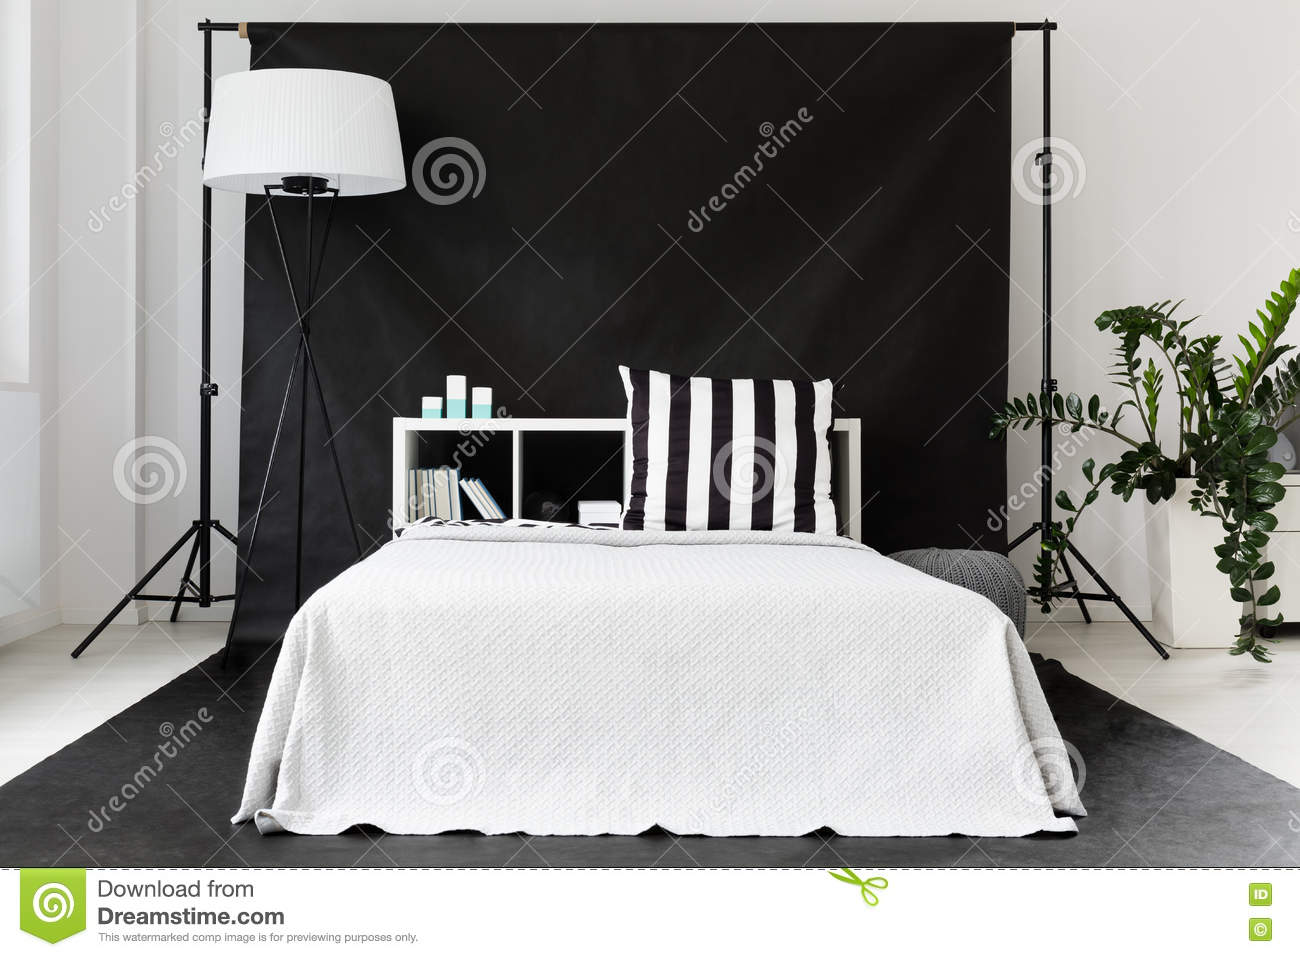 Single Man Bedroom Idea Stock Image Image Of White Clean 76847379